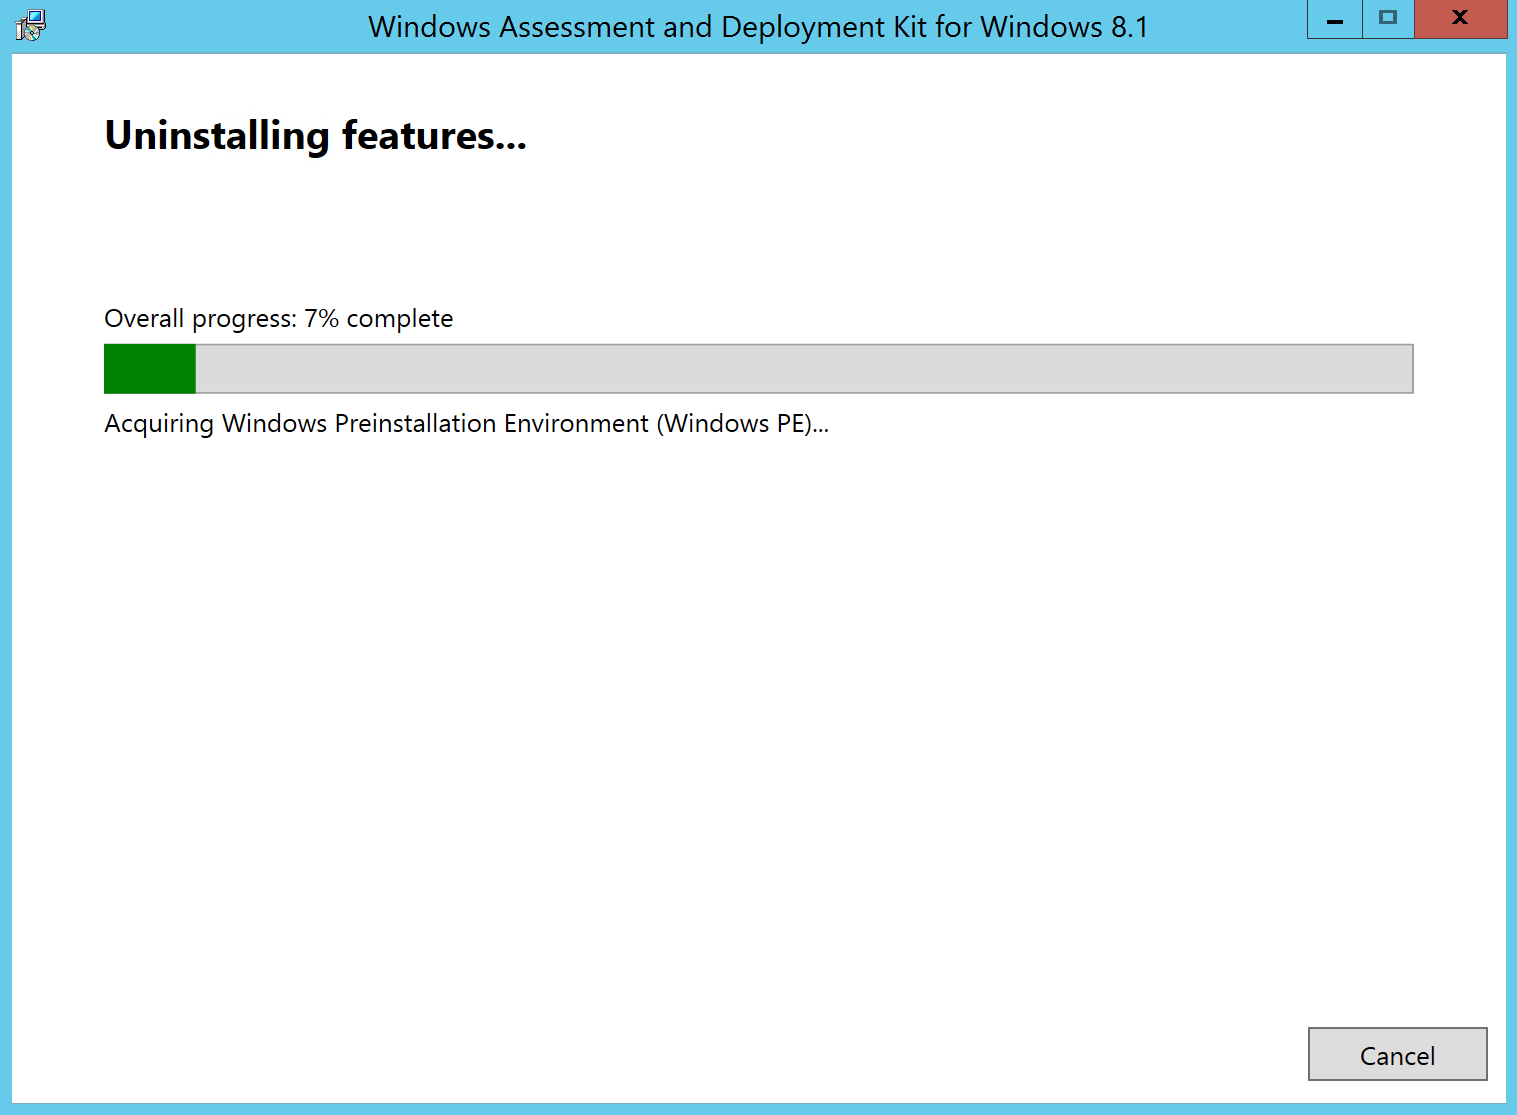 Update SCCM 2012 R2 to SCCM CB Uninstall Windows ADK